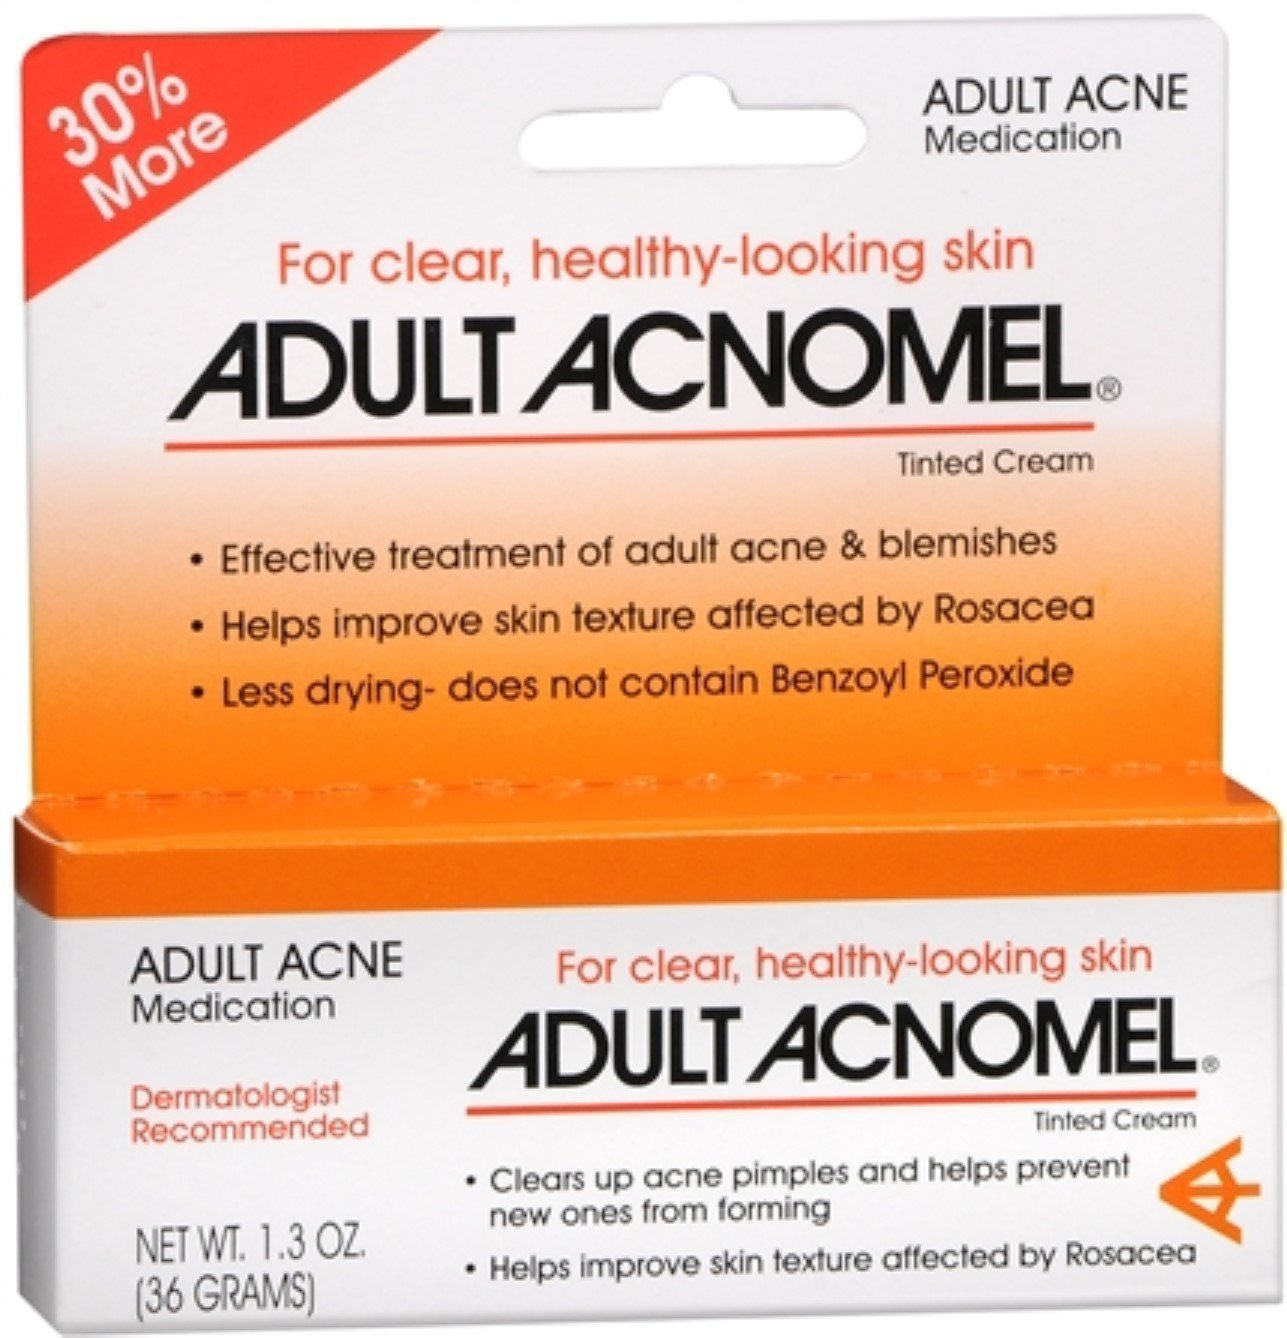 Adult Acnomel Tinted Cream 1.30 oz (Pack of 6)